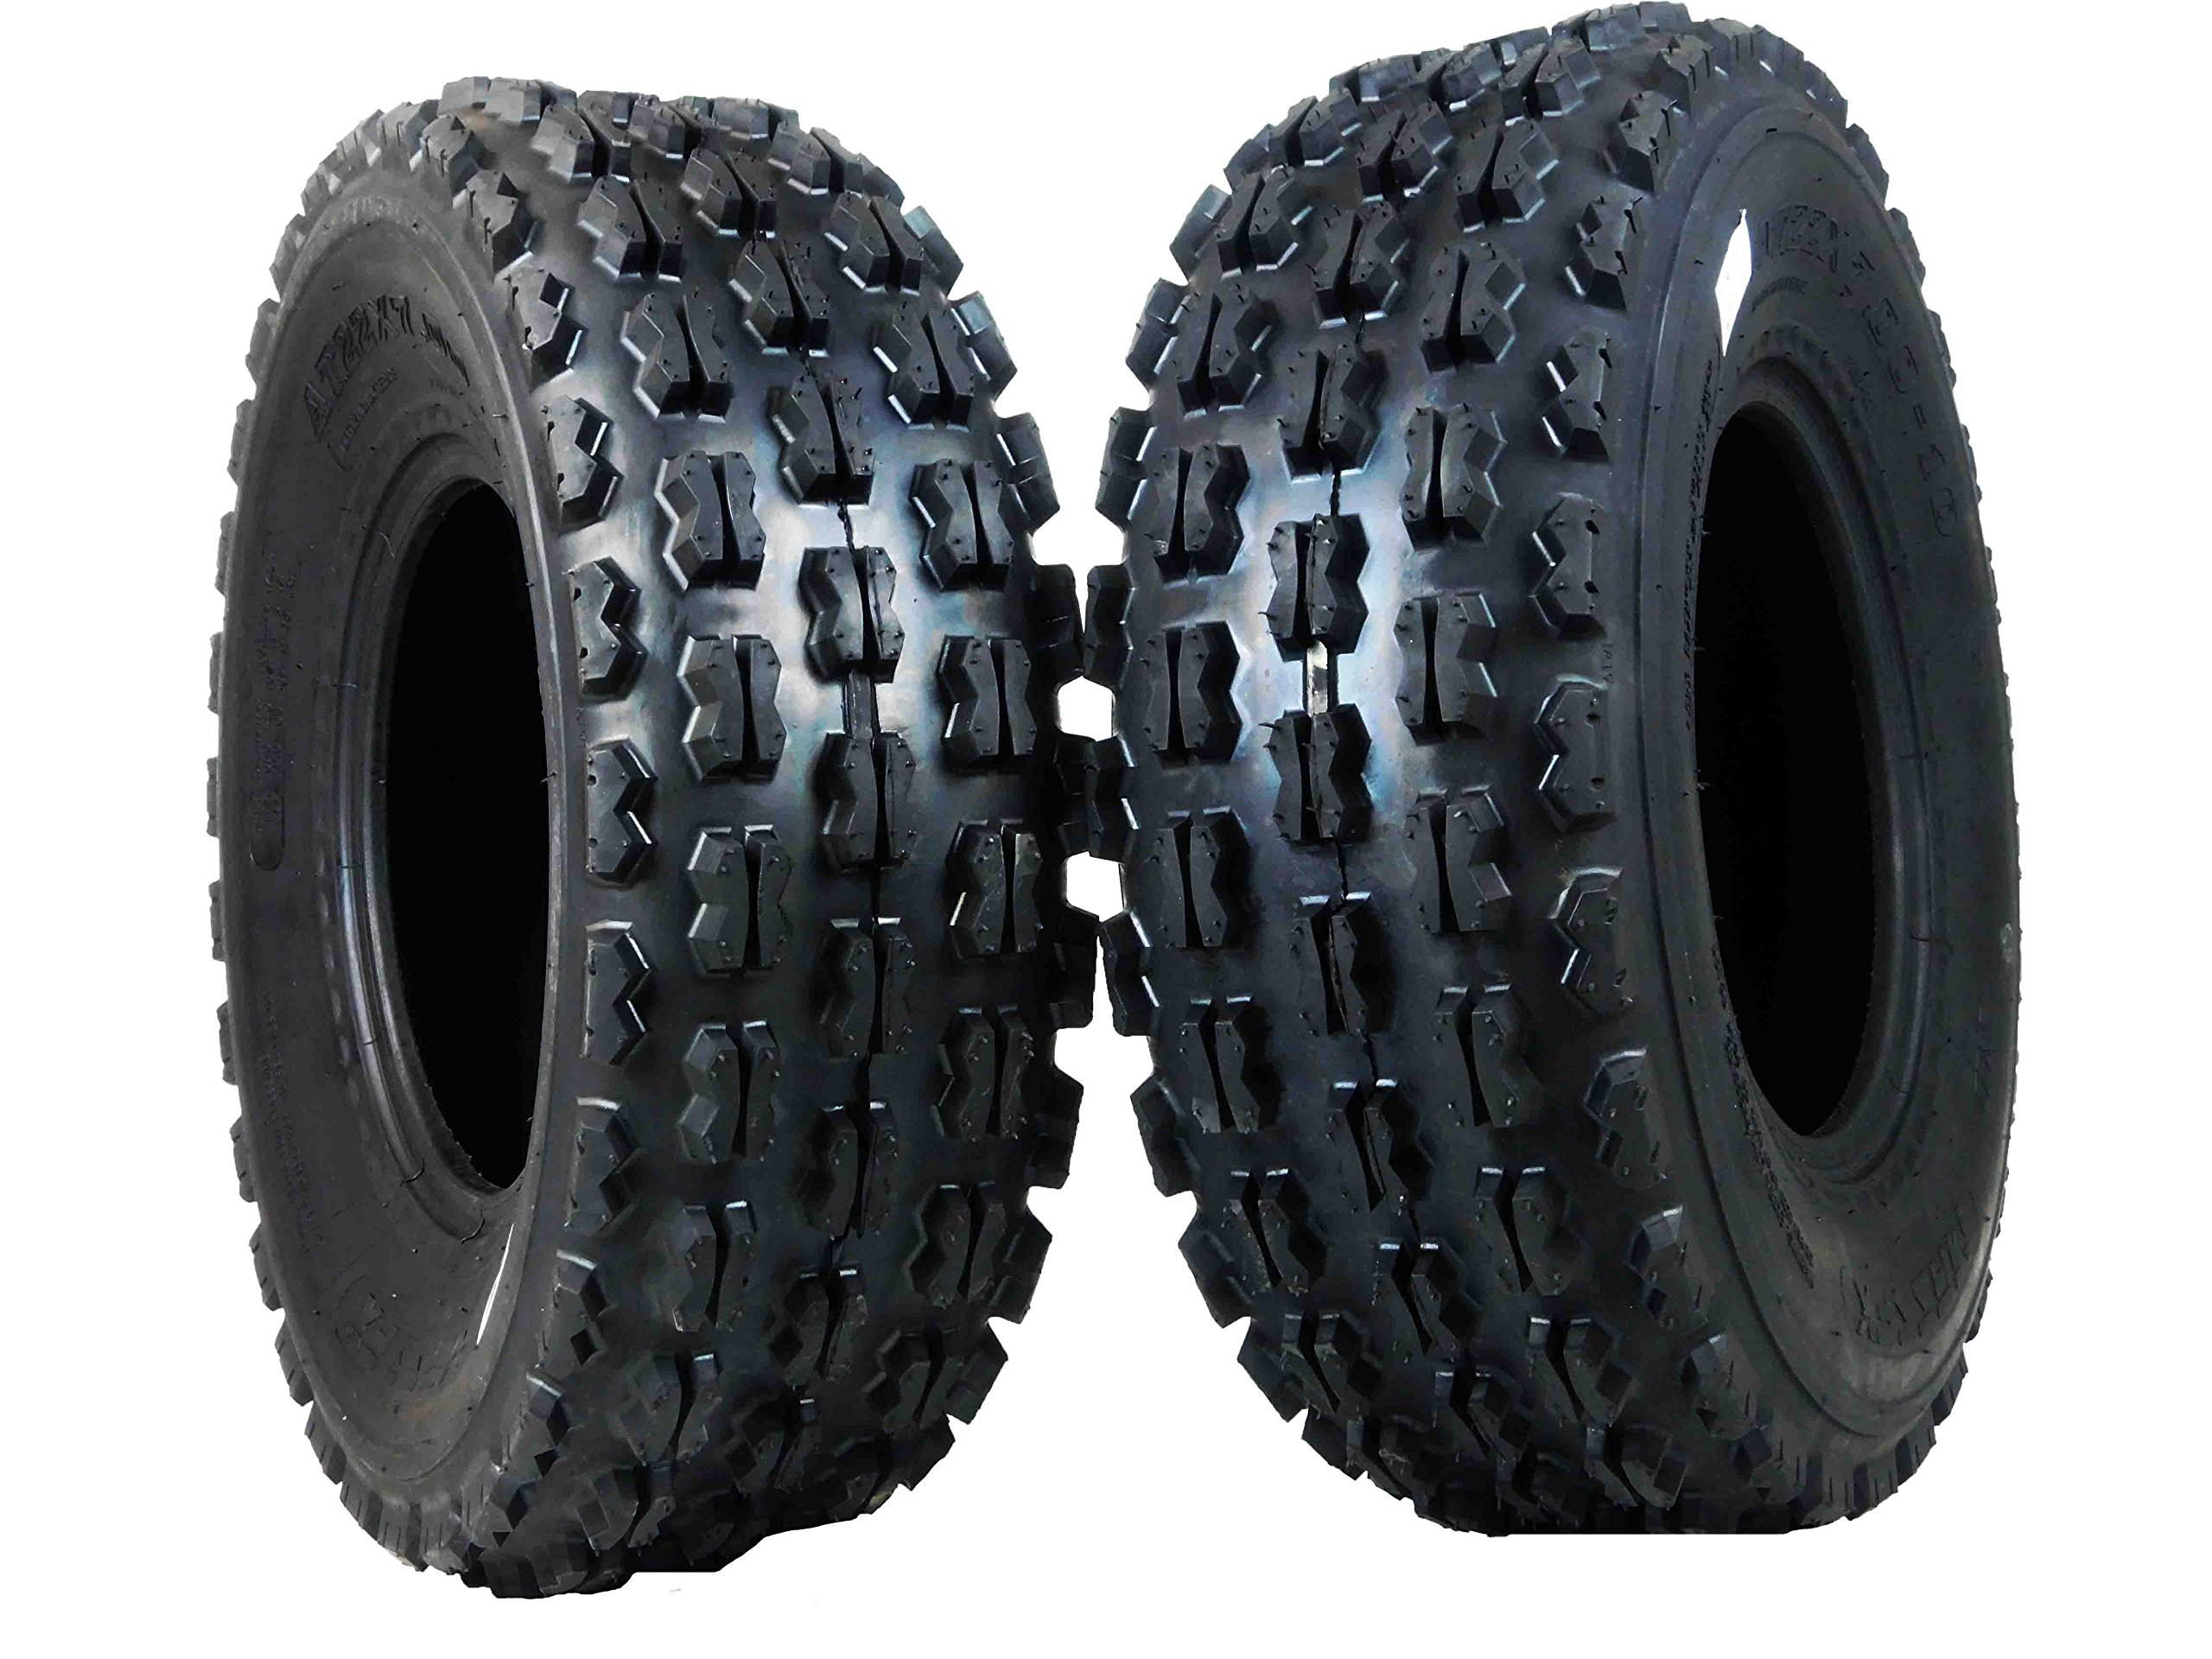 New MASSFX ATV Sport Quad Tires Two Front 22x7-10 4 Ply Tires For Yamaha Raptor Banshee Honda 400ex 450r 660 700 400 450 350 250 (Set of 2 Front 22x7-10)